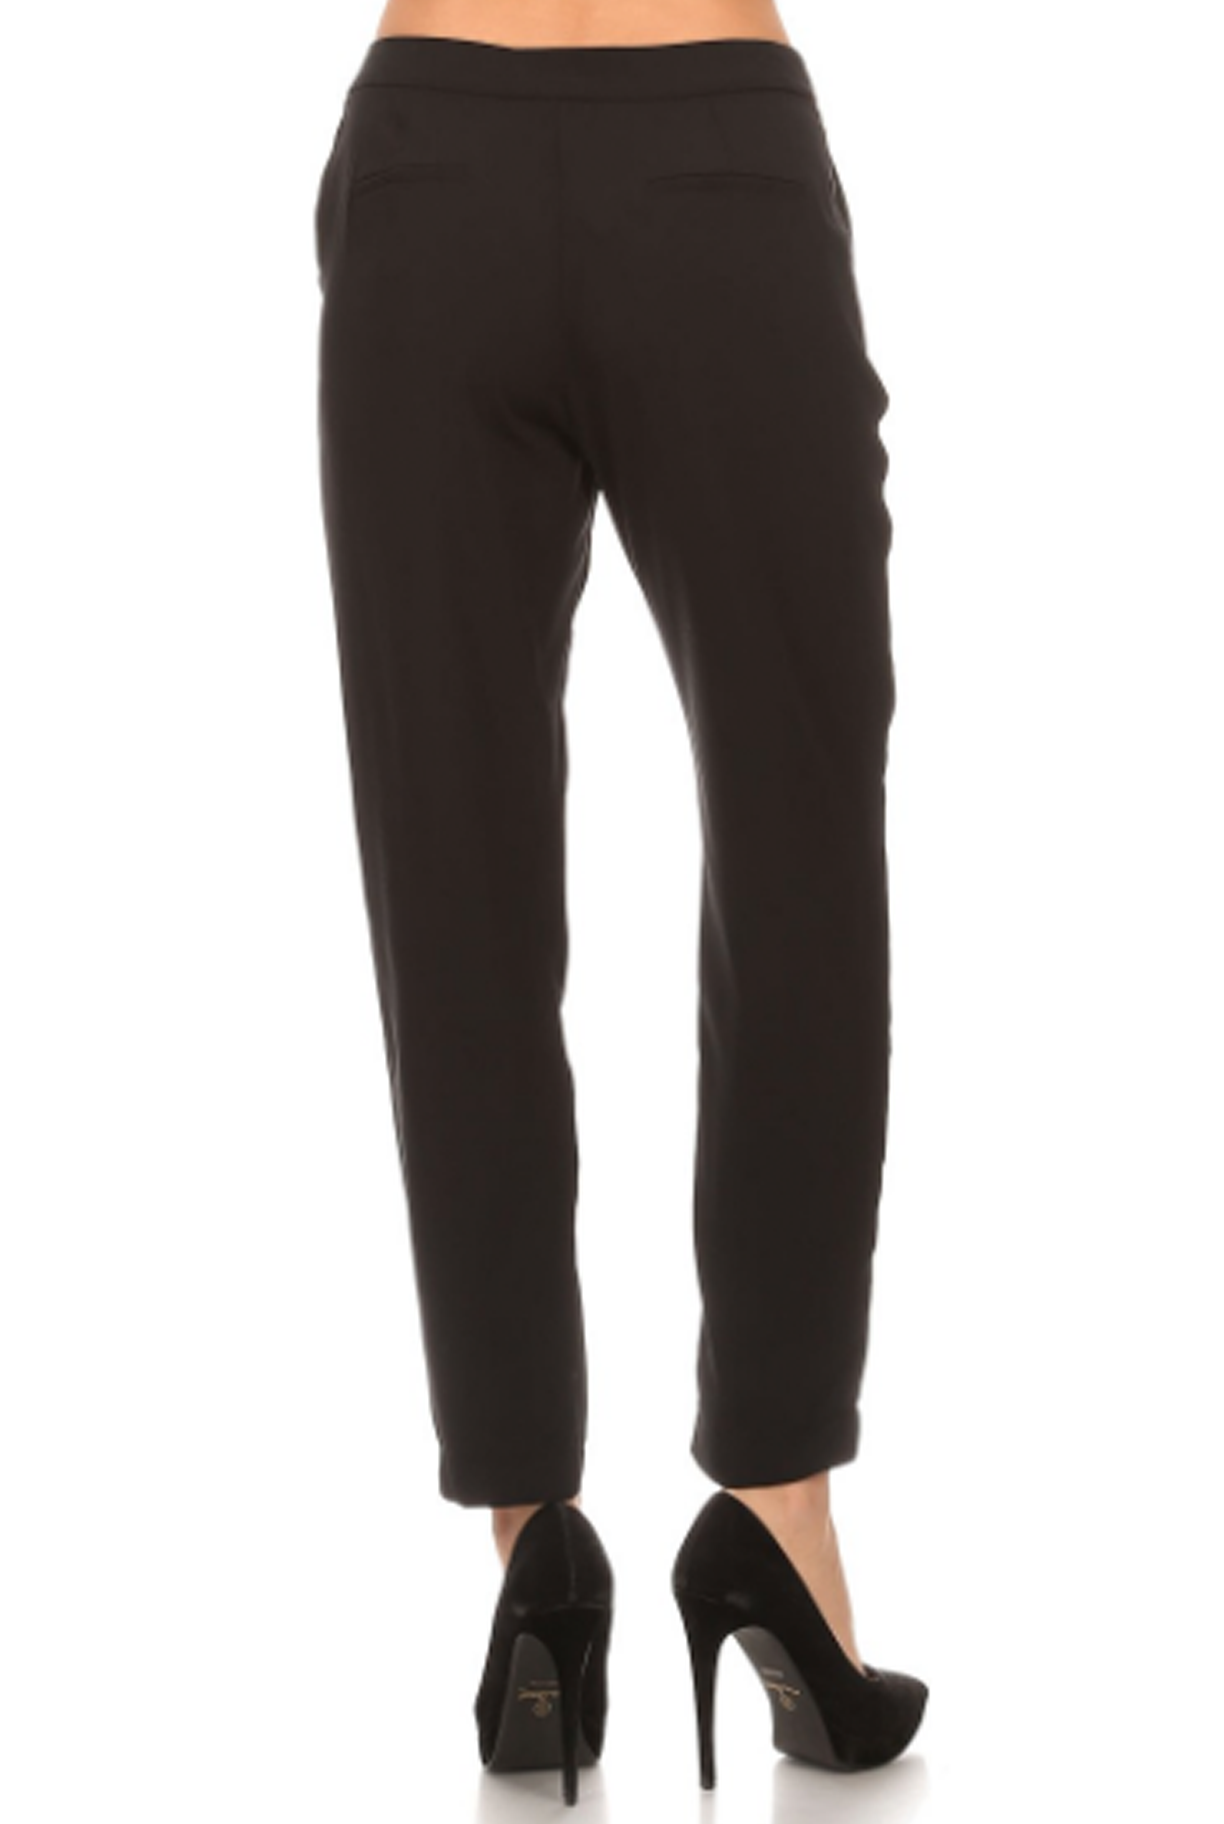 'The Executive Assistant' Pant